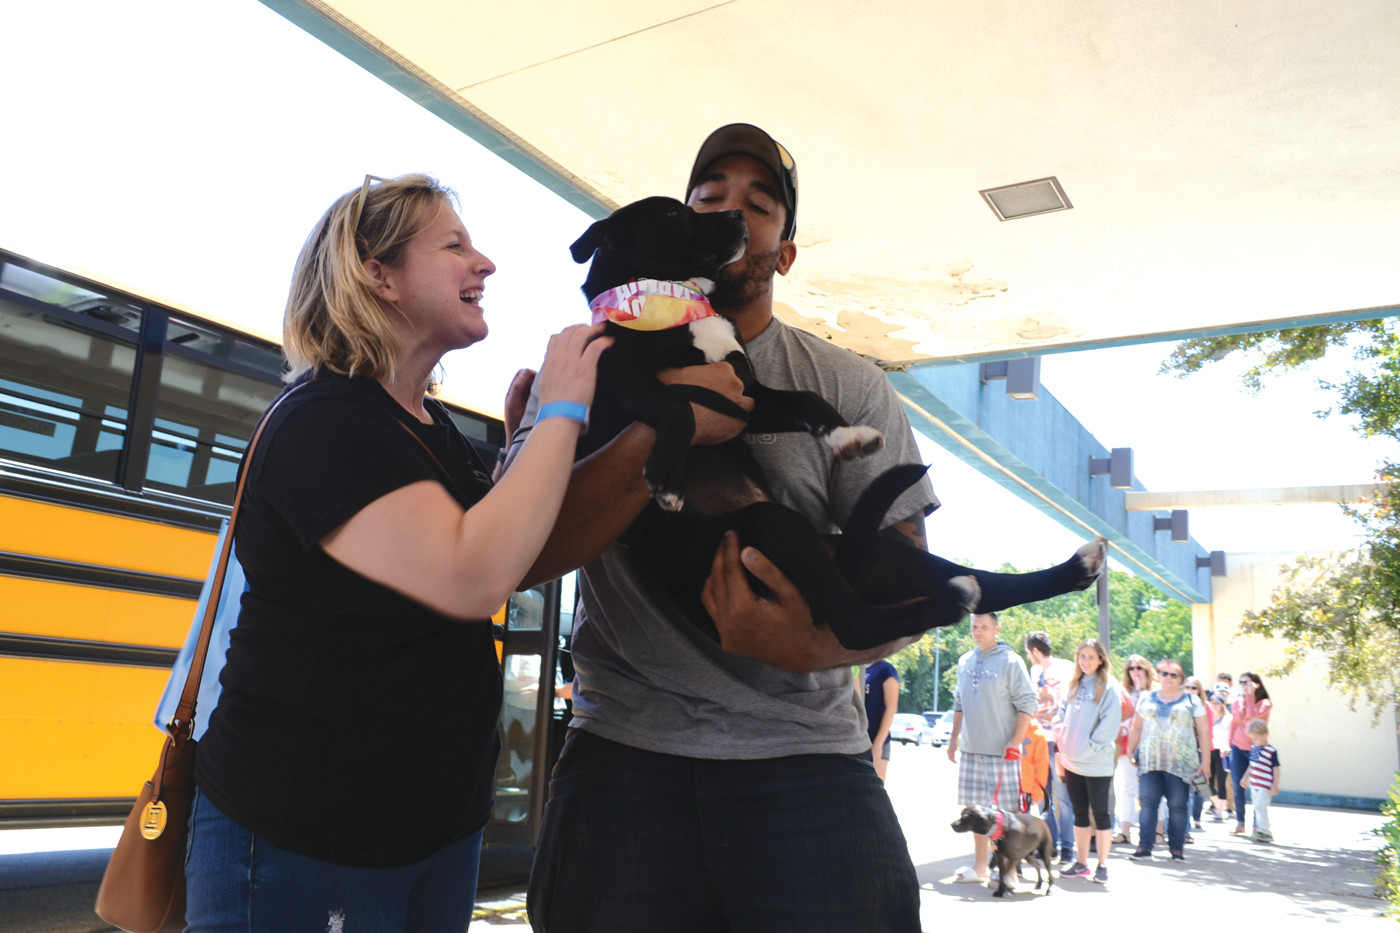 NEW FAMILY: Therysa Zimmer and Earl Jackson were all smiles as they stepped off the shuttle from Balise at the Ann & Hope parking lot, where parking had to be arranged due to the size of the event, with their new forever friend Pearl.